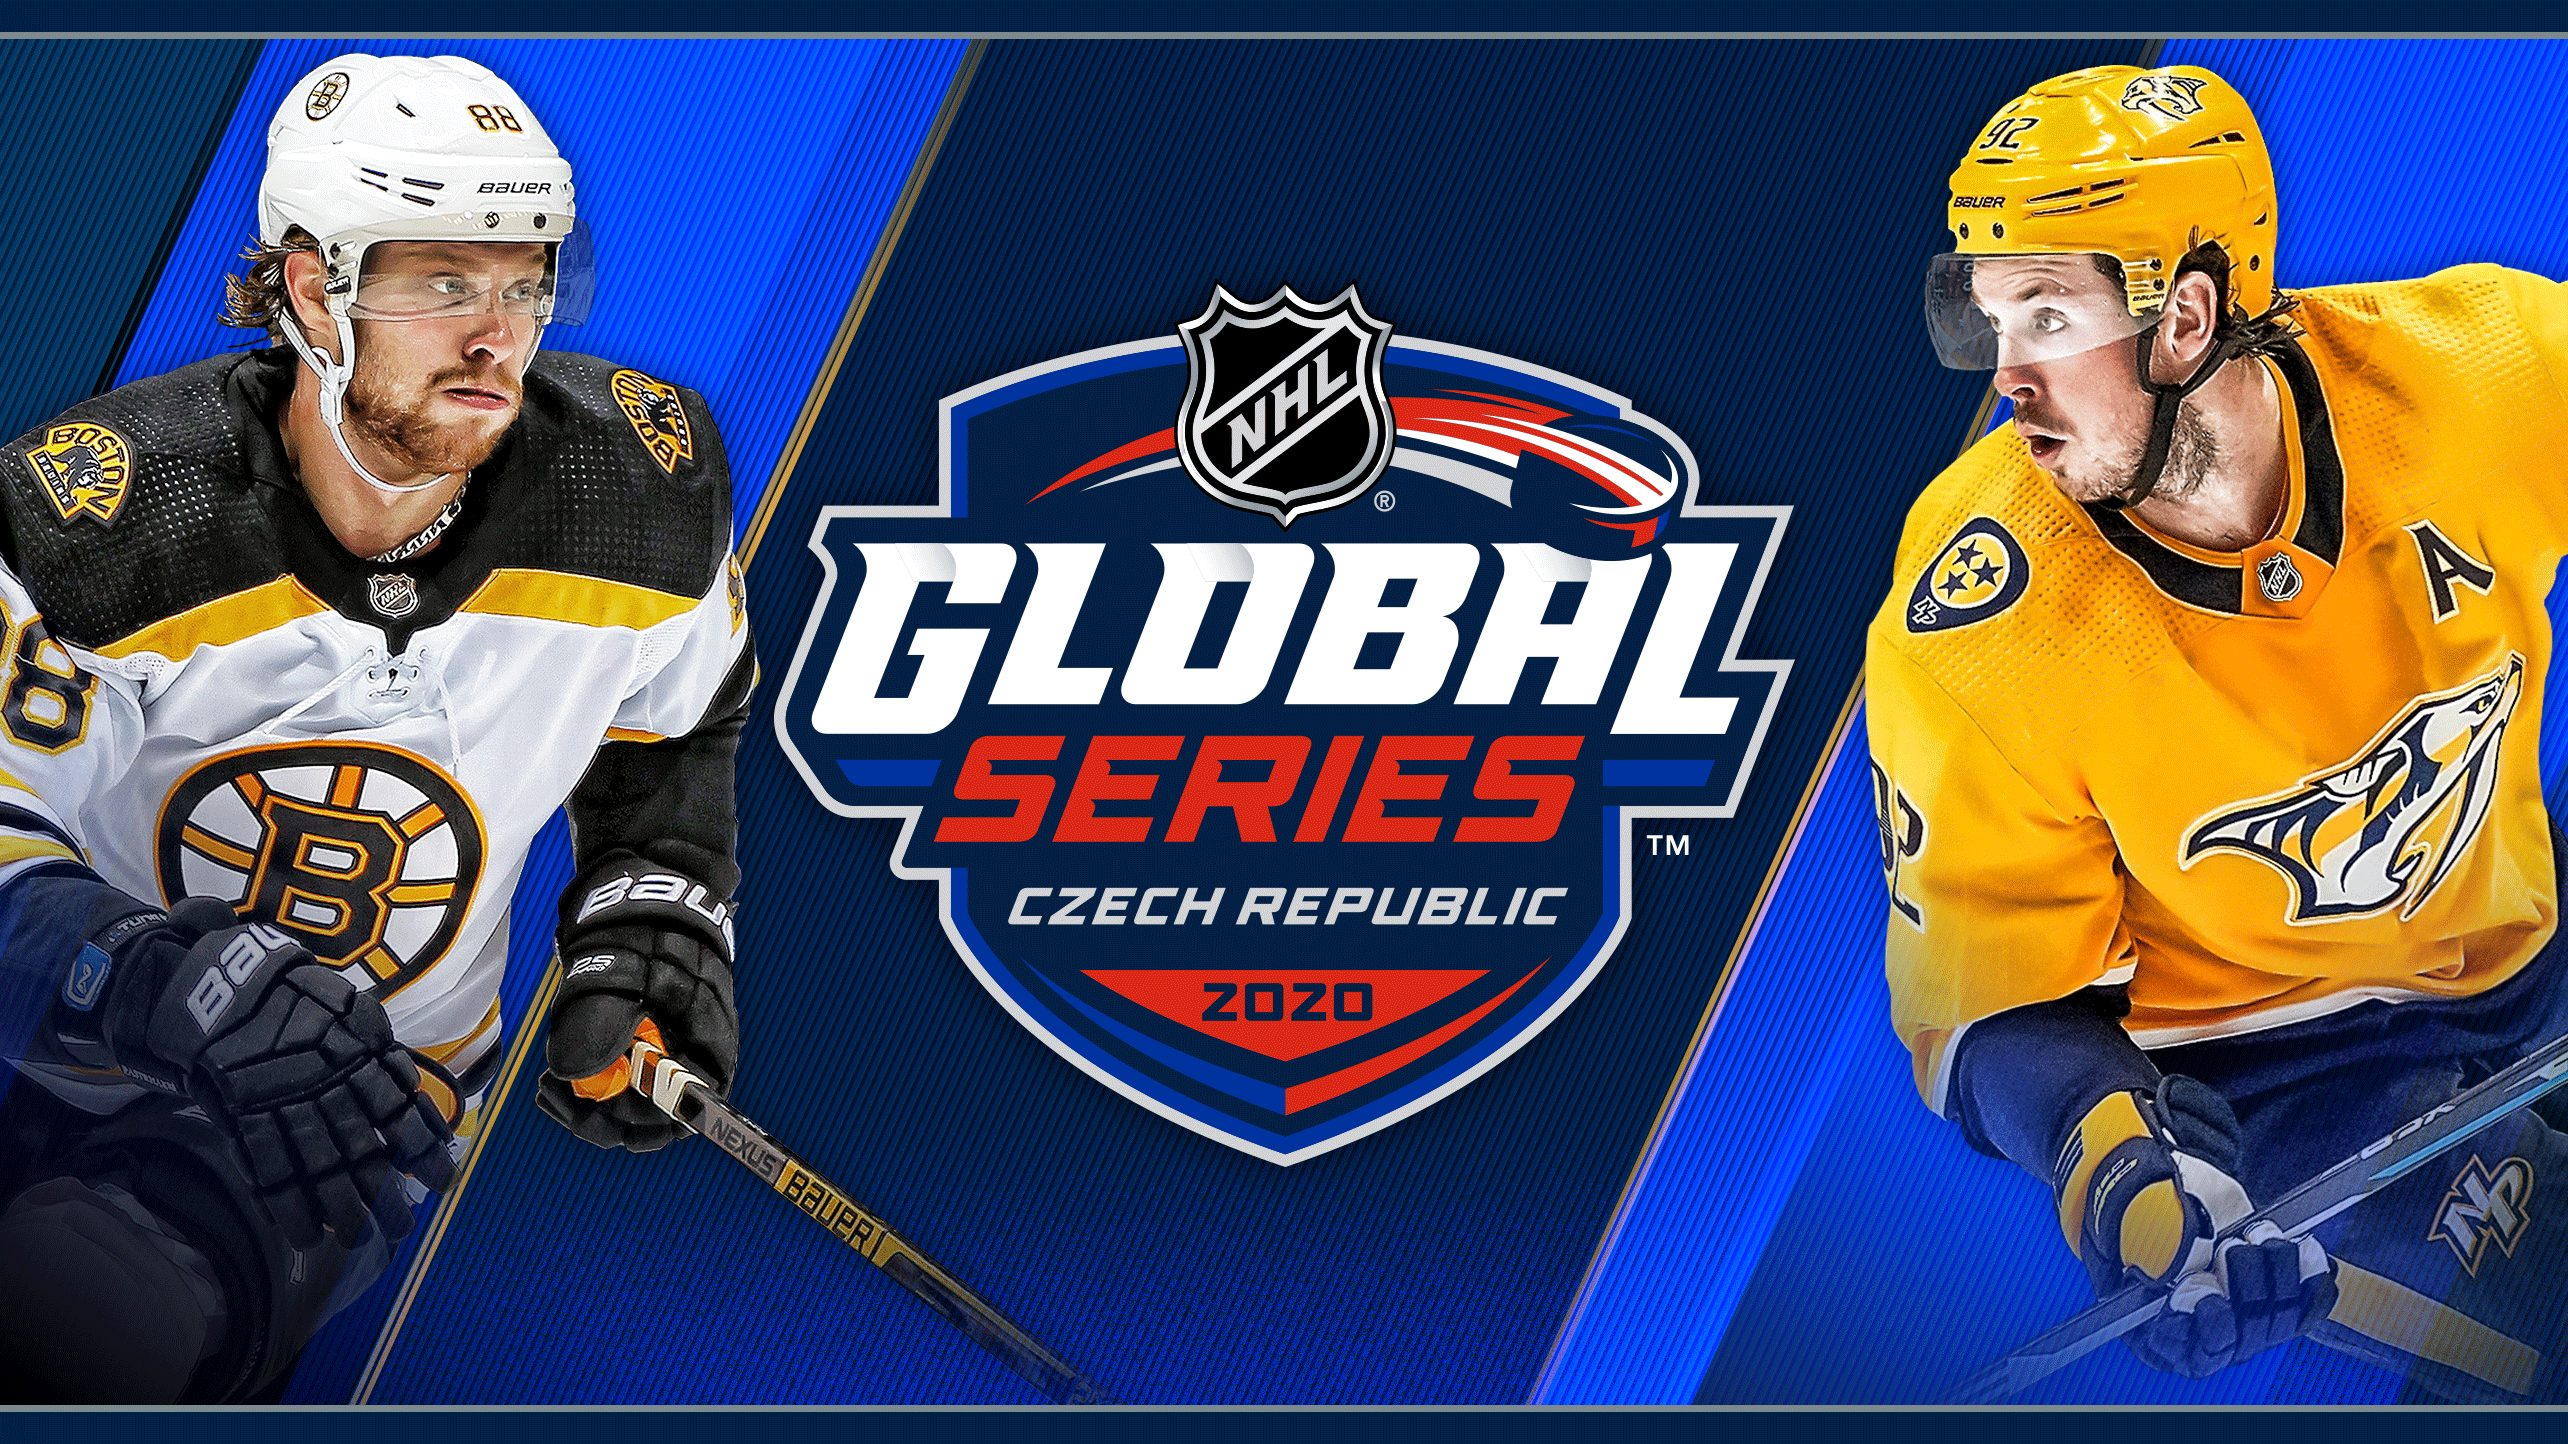 2020-21 NHL season to open in Prague as Boston Bruins take on Nashville Predators